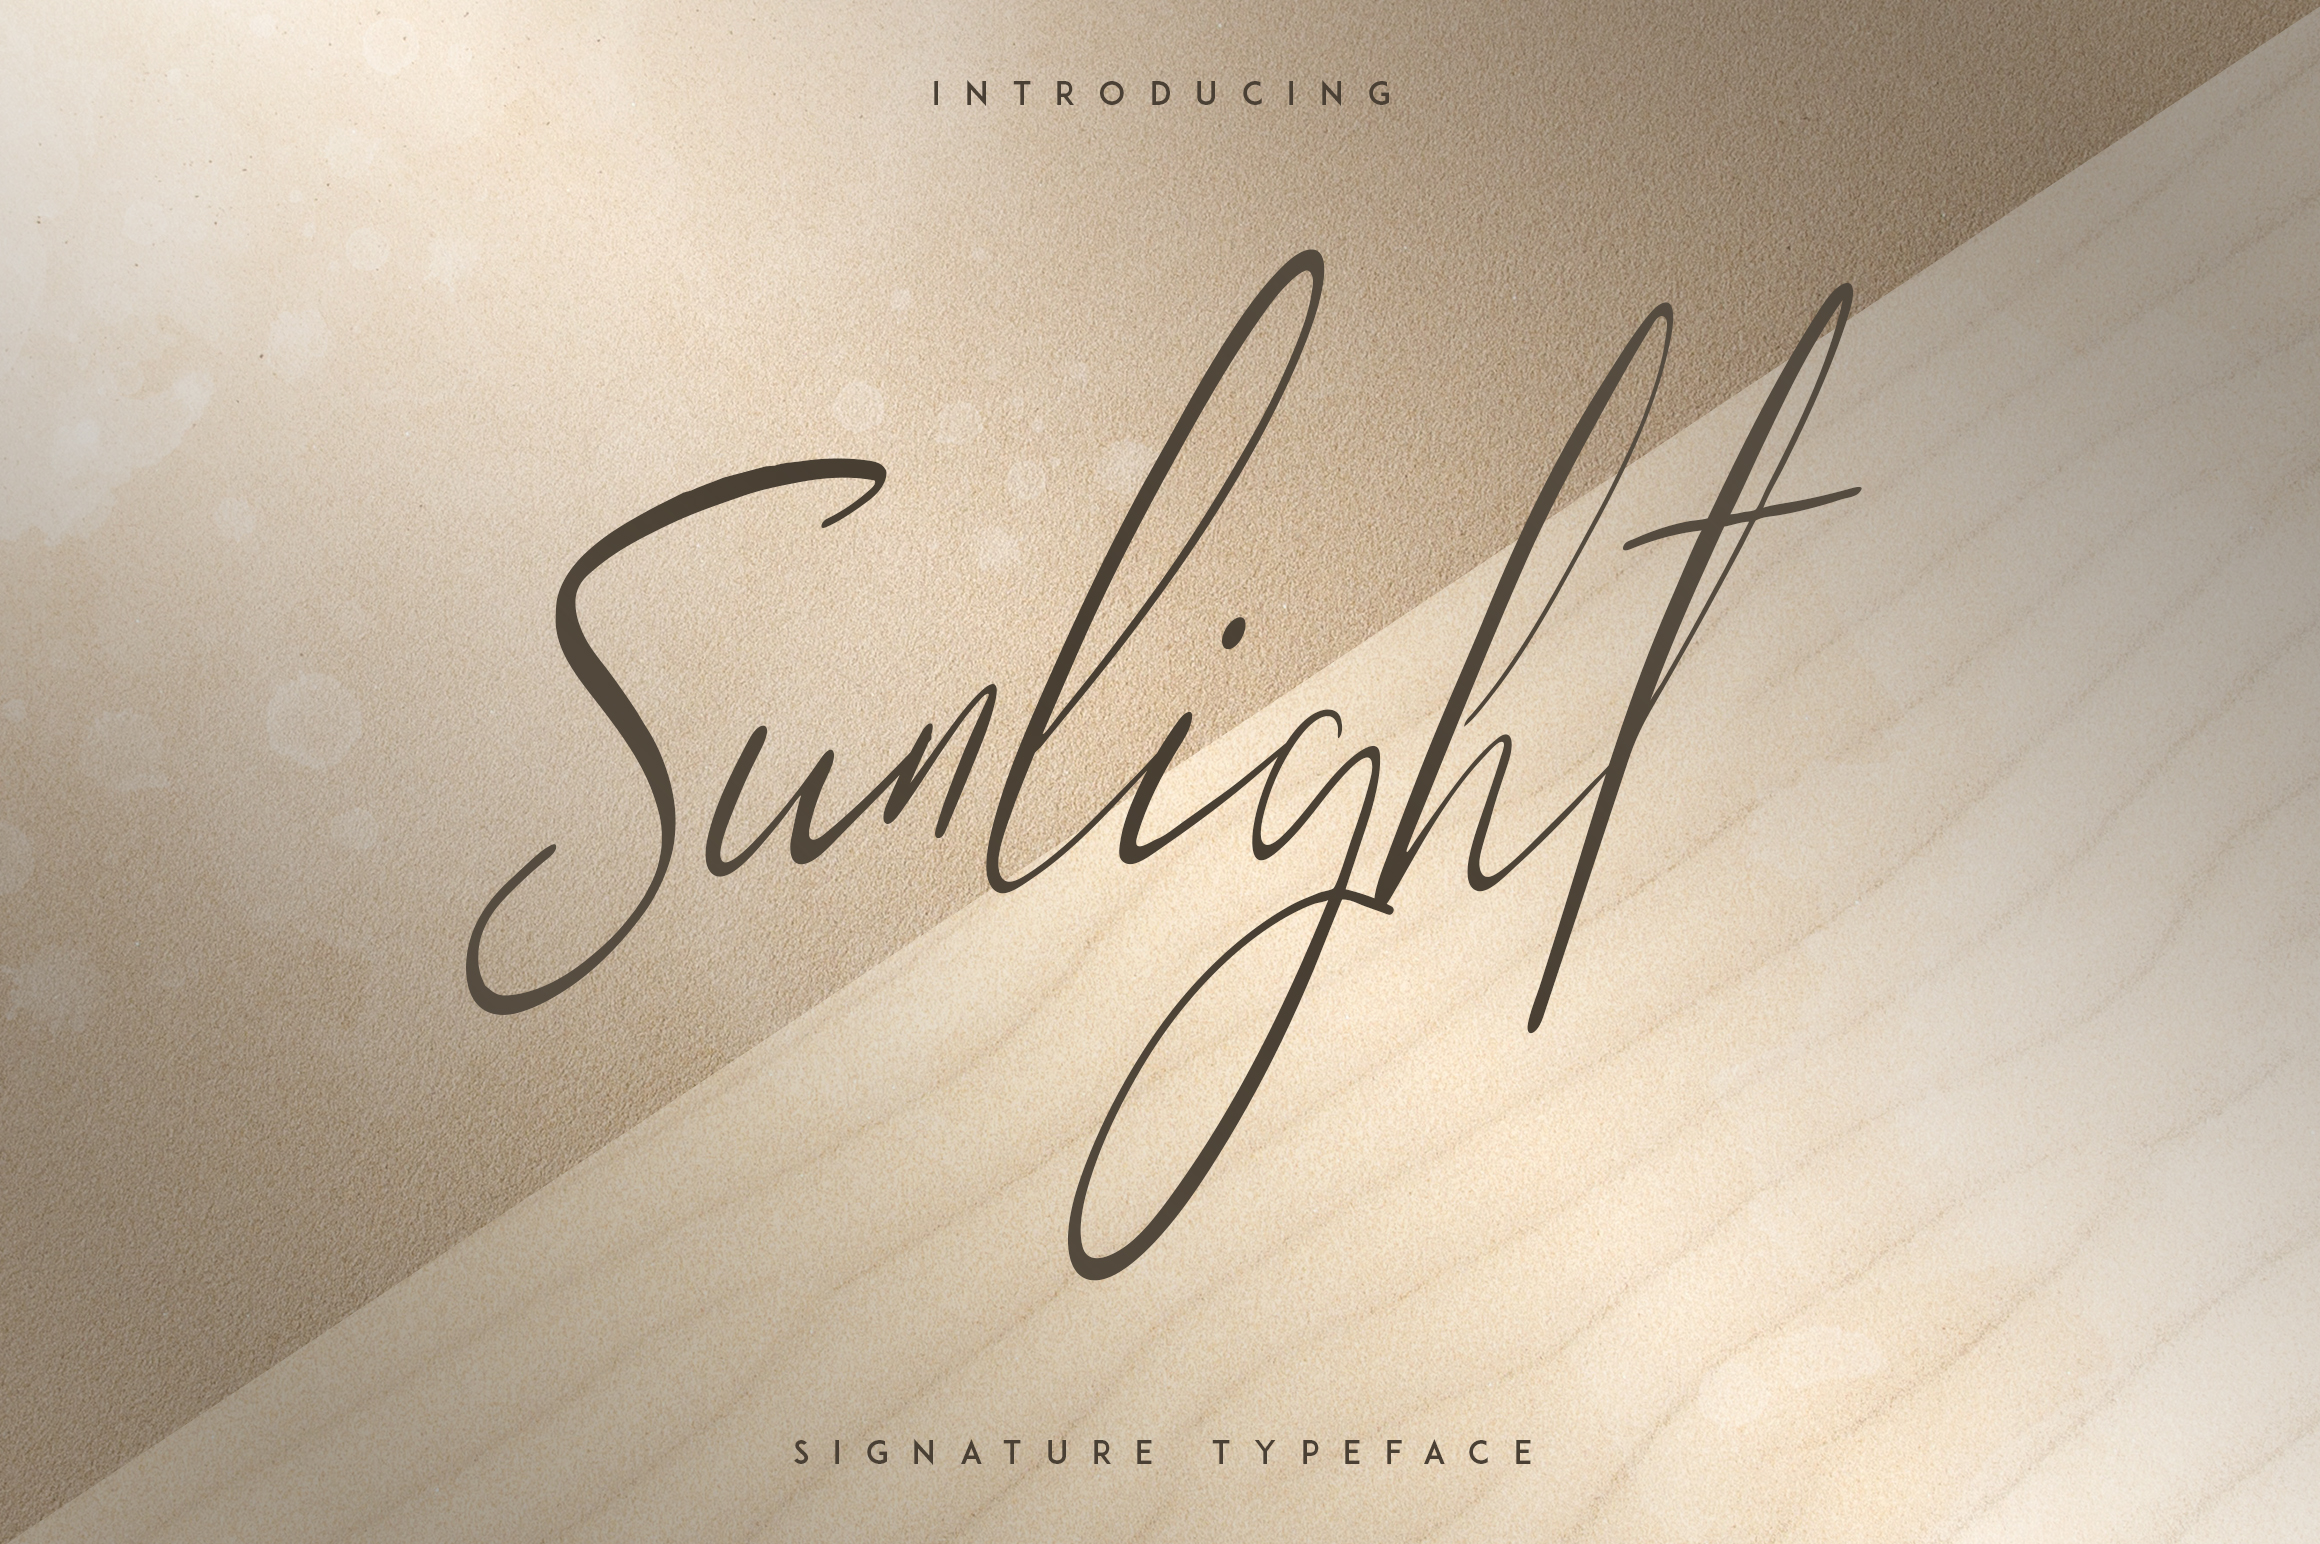 Sunlight - Signature typeface example image 1